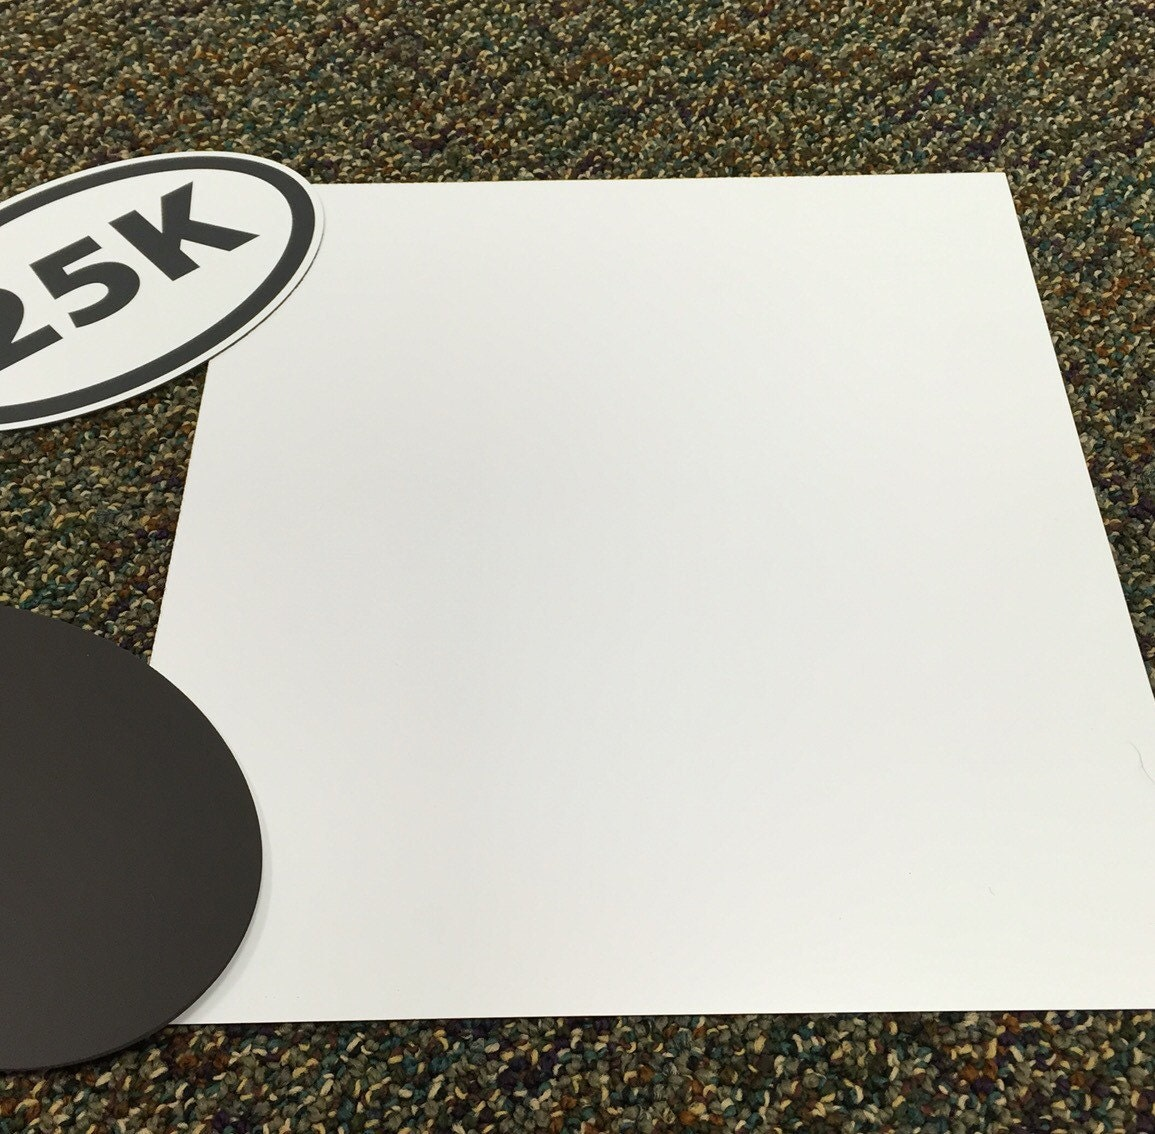 Magnetized White Vinyl For Crafting By The Square Foot Heavy